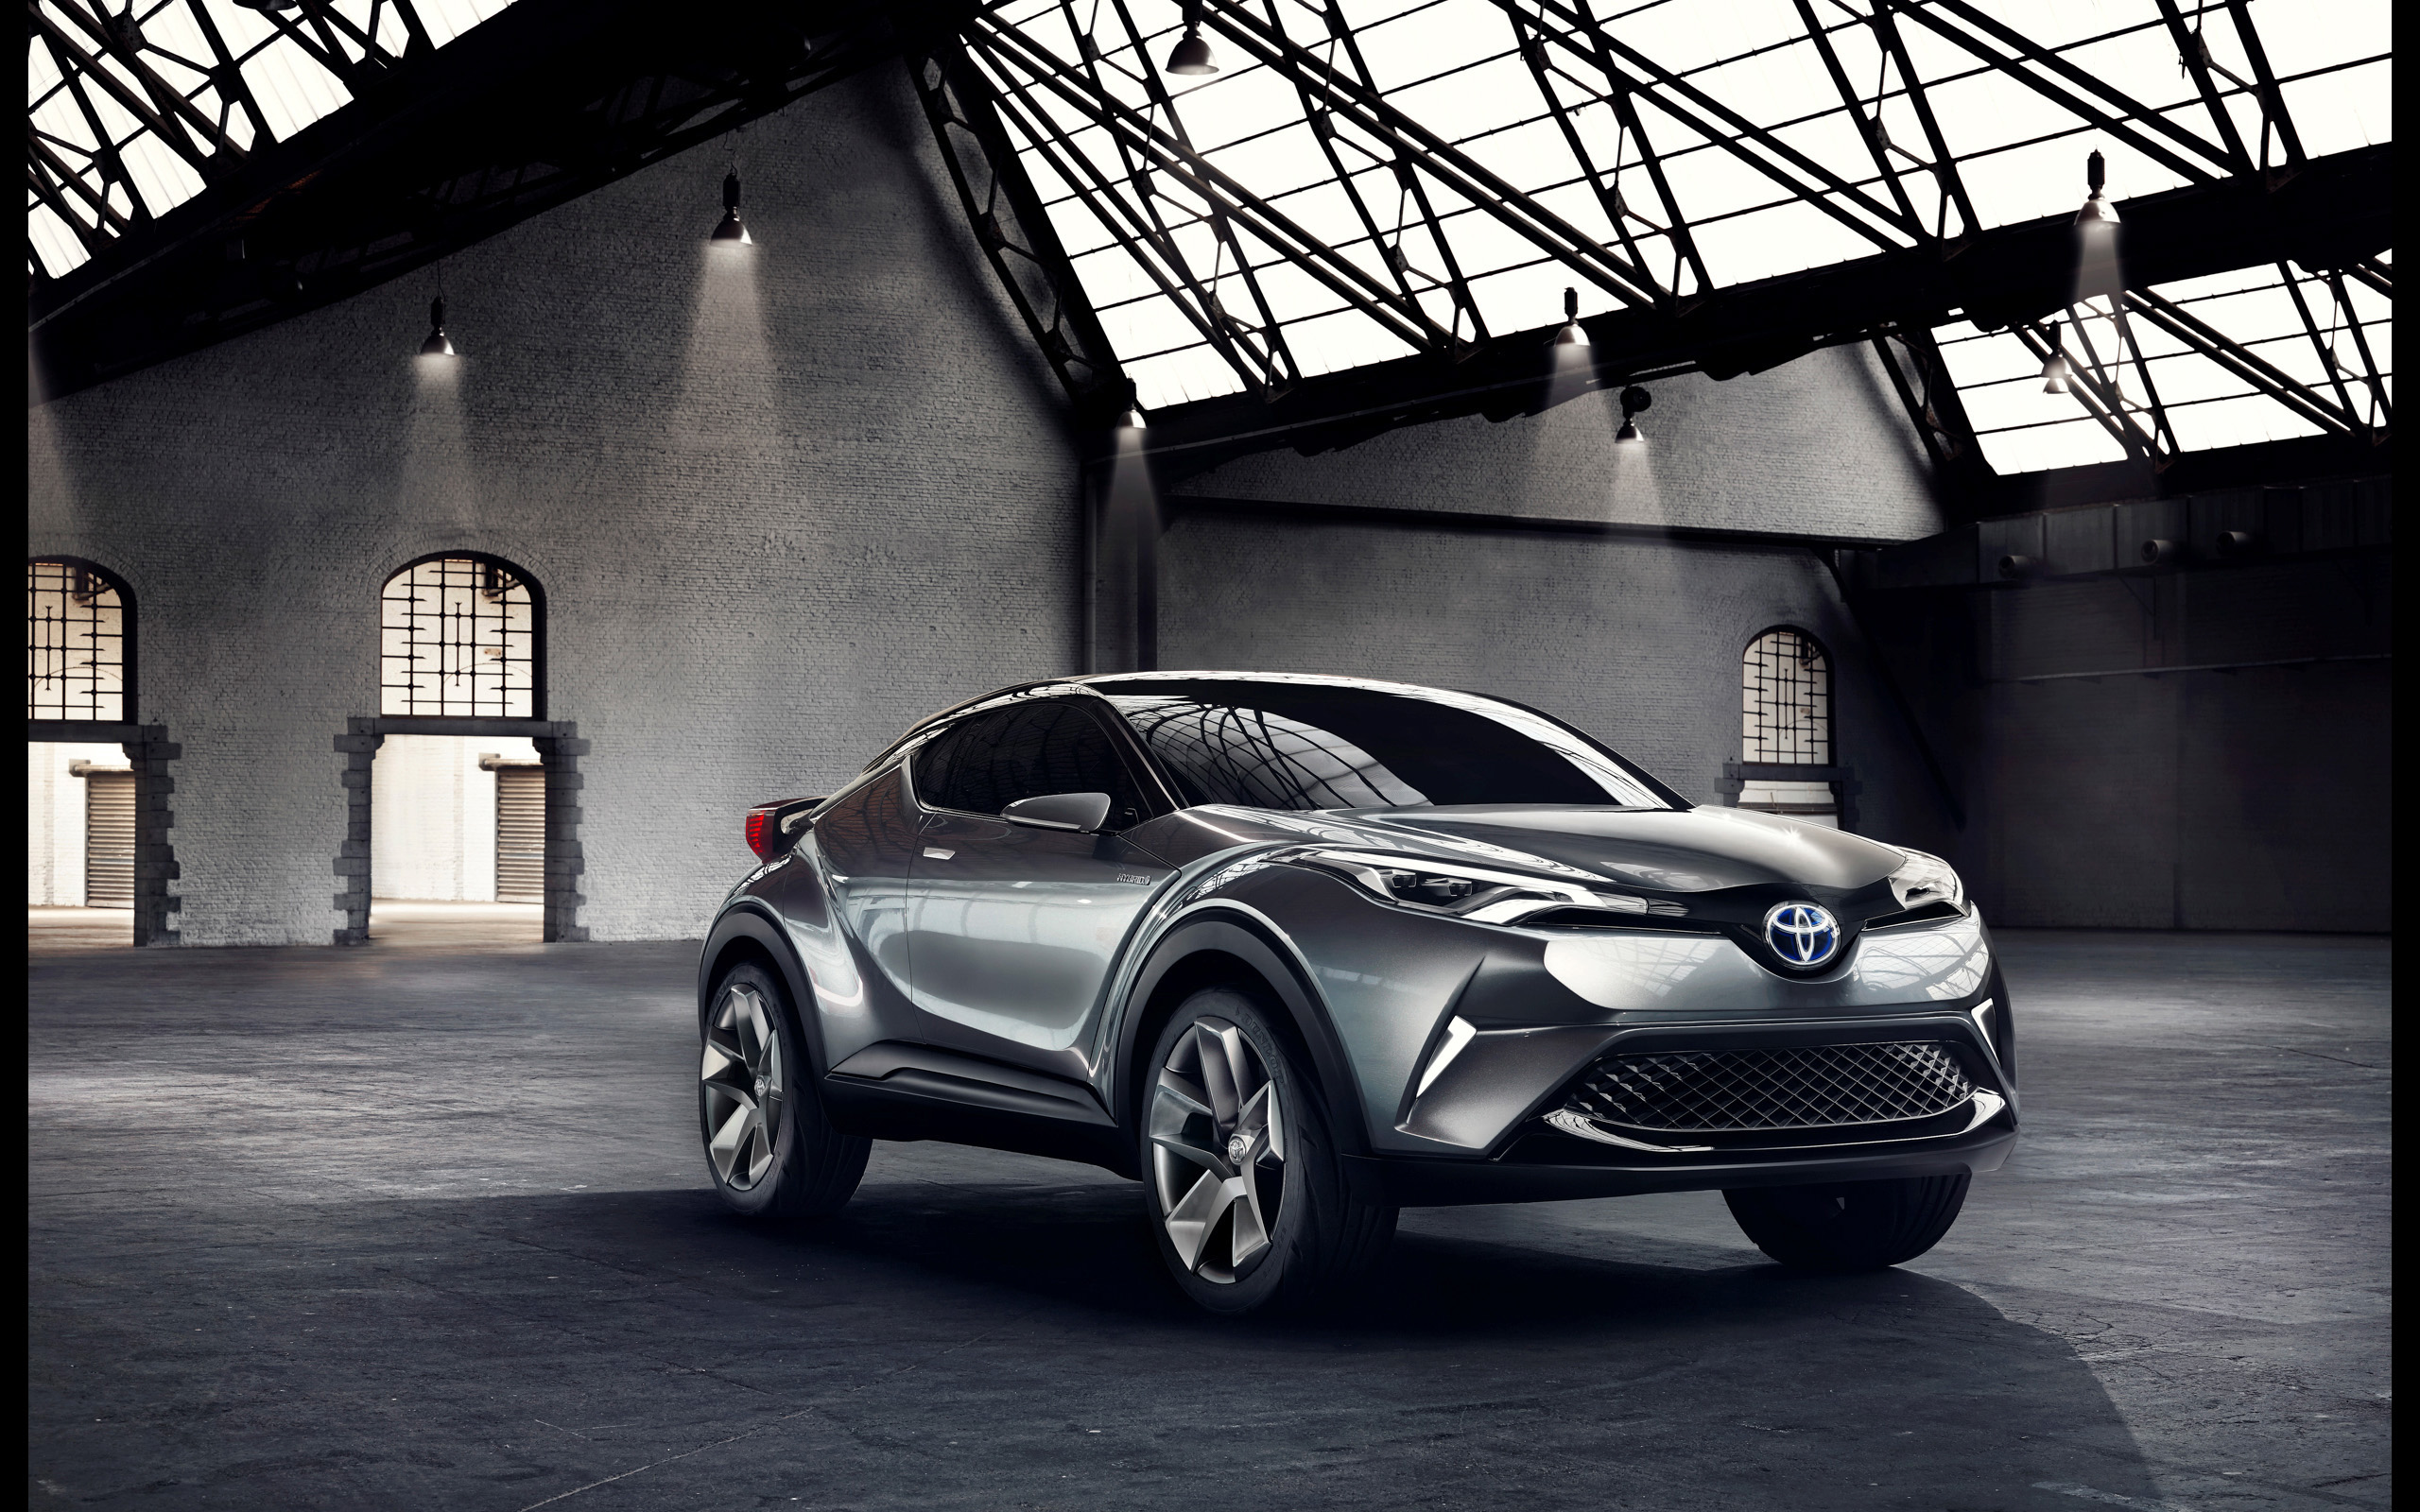 Toyota Chr Concept , HD Wallpaper & Backgrounds